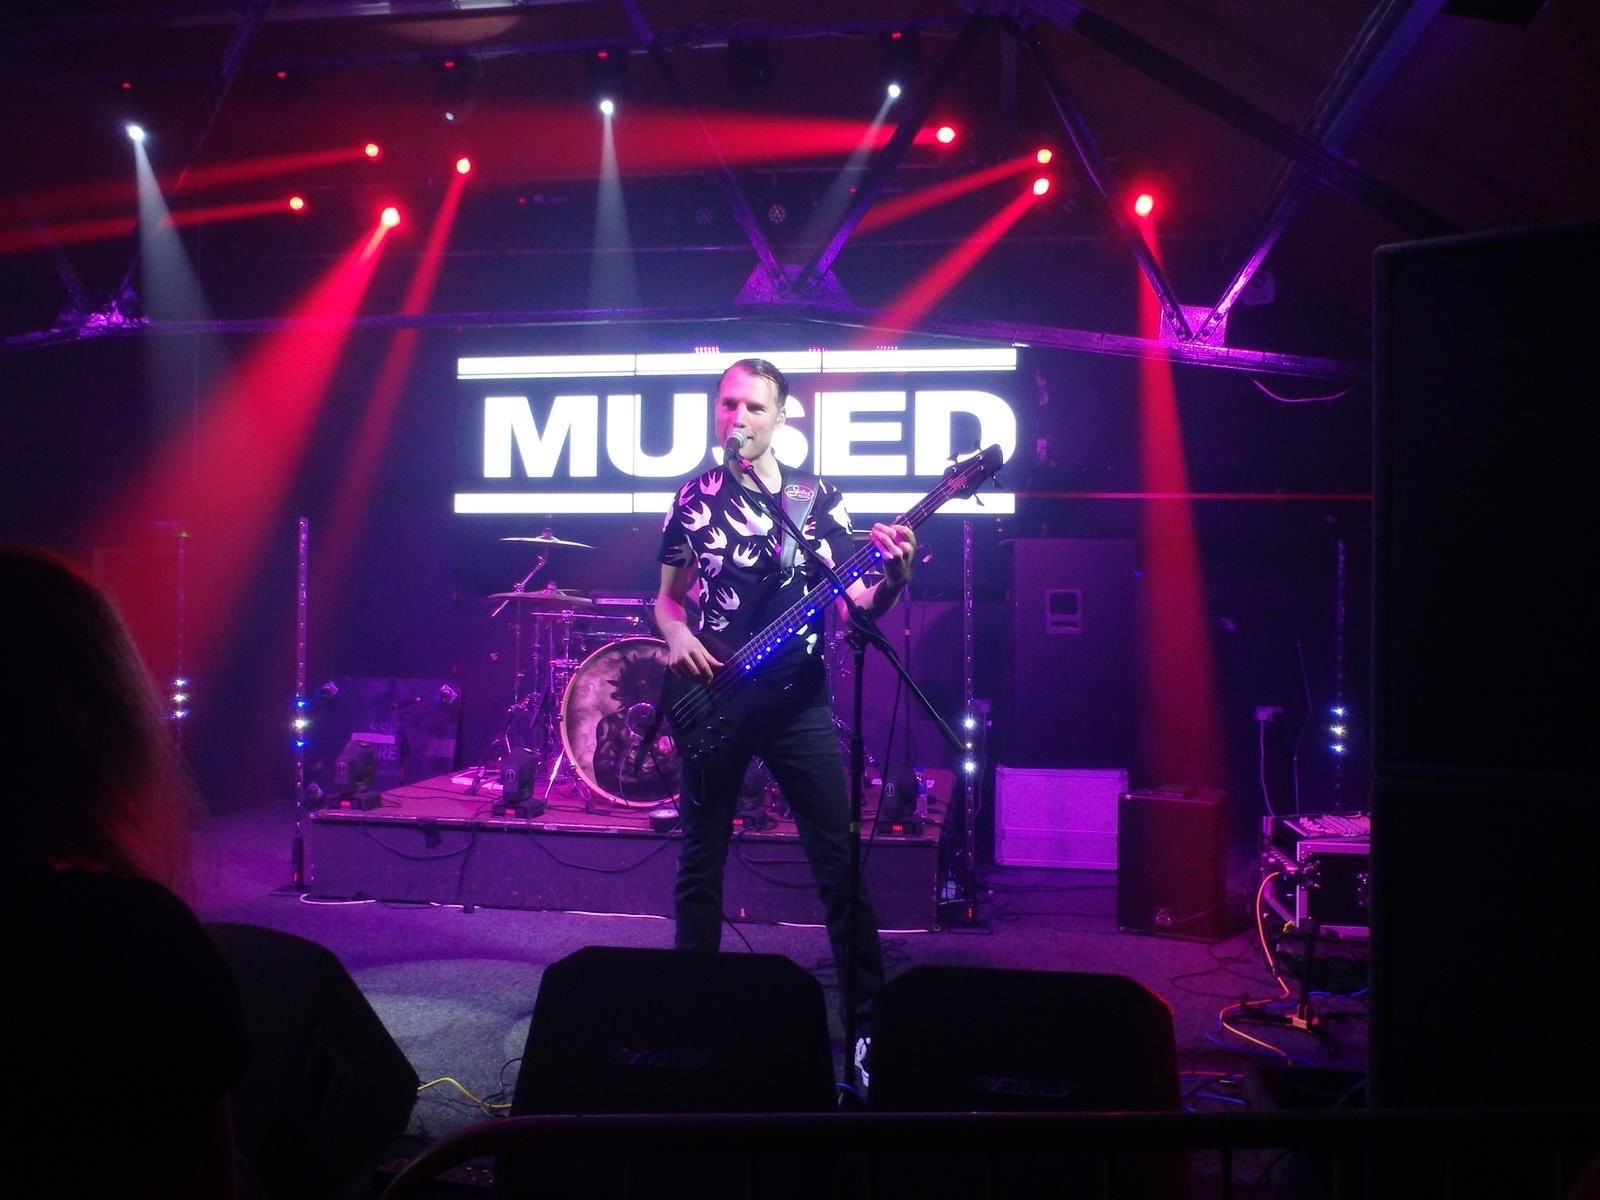 Stu - Bass Mused, Muse Tribute band